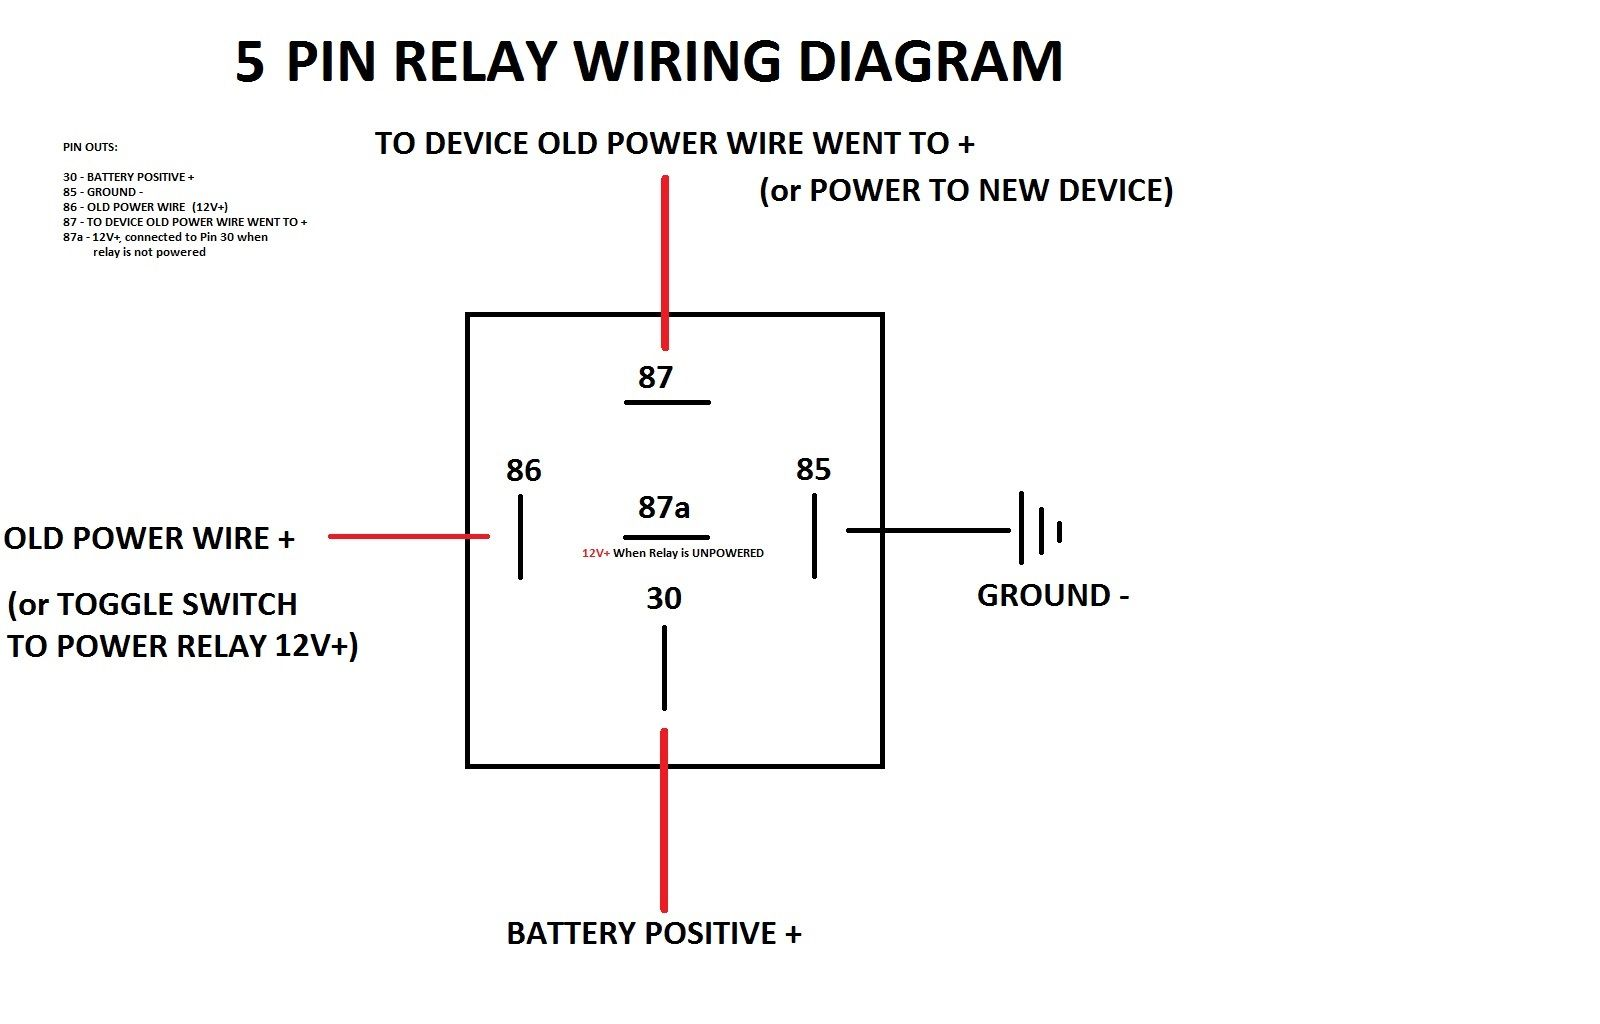 simple 5 pin relay diagram dsmtuners wire trucks tools house design  [ 1600 x 1024 Pixel ]